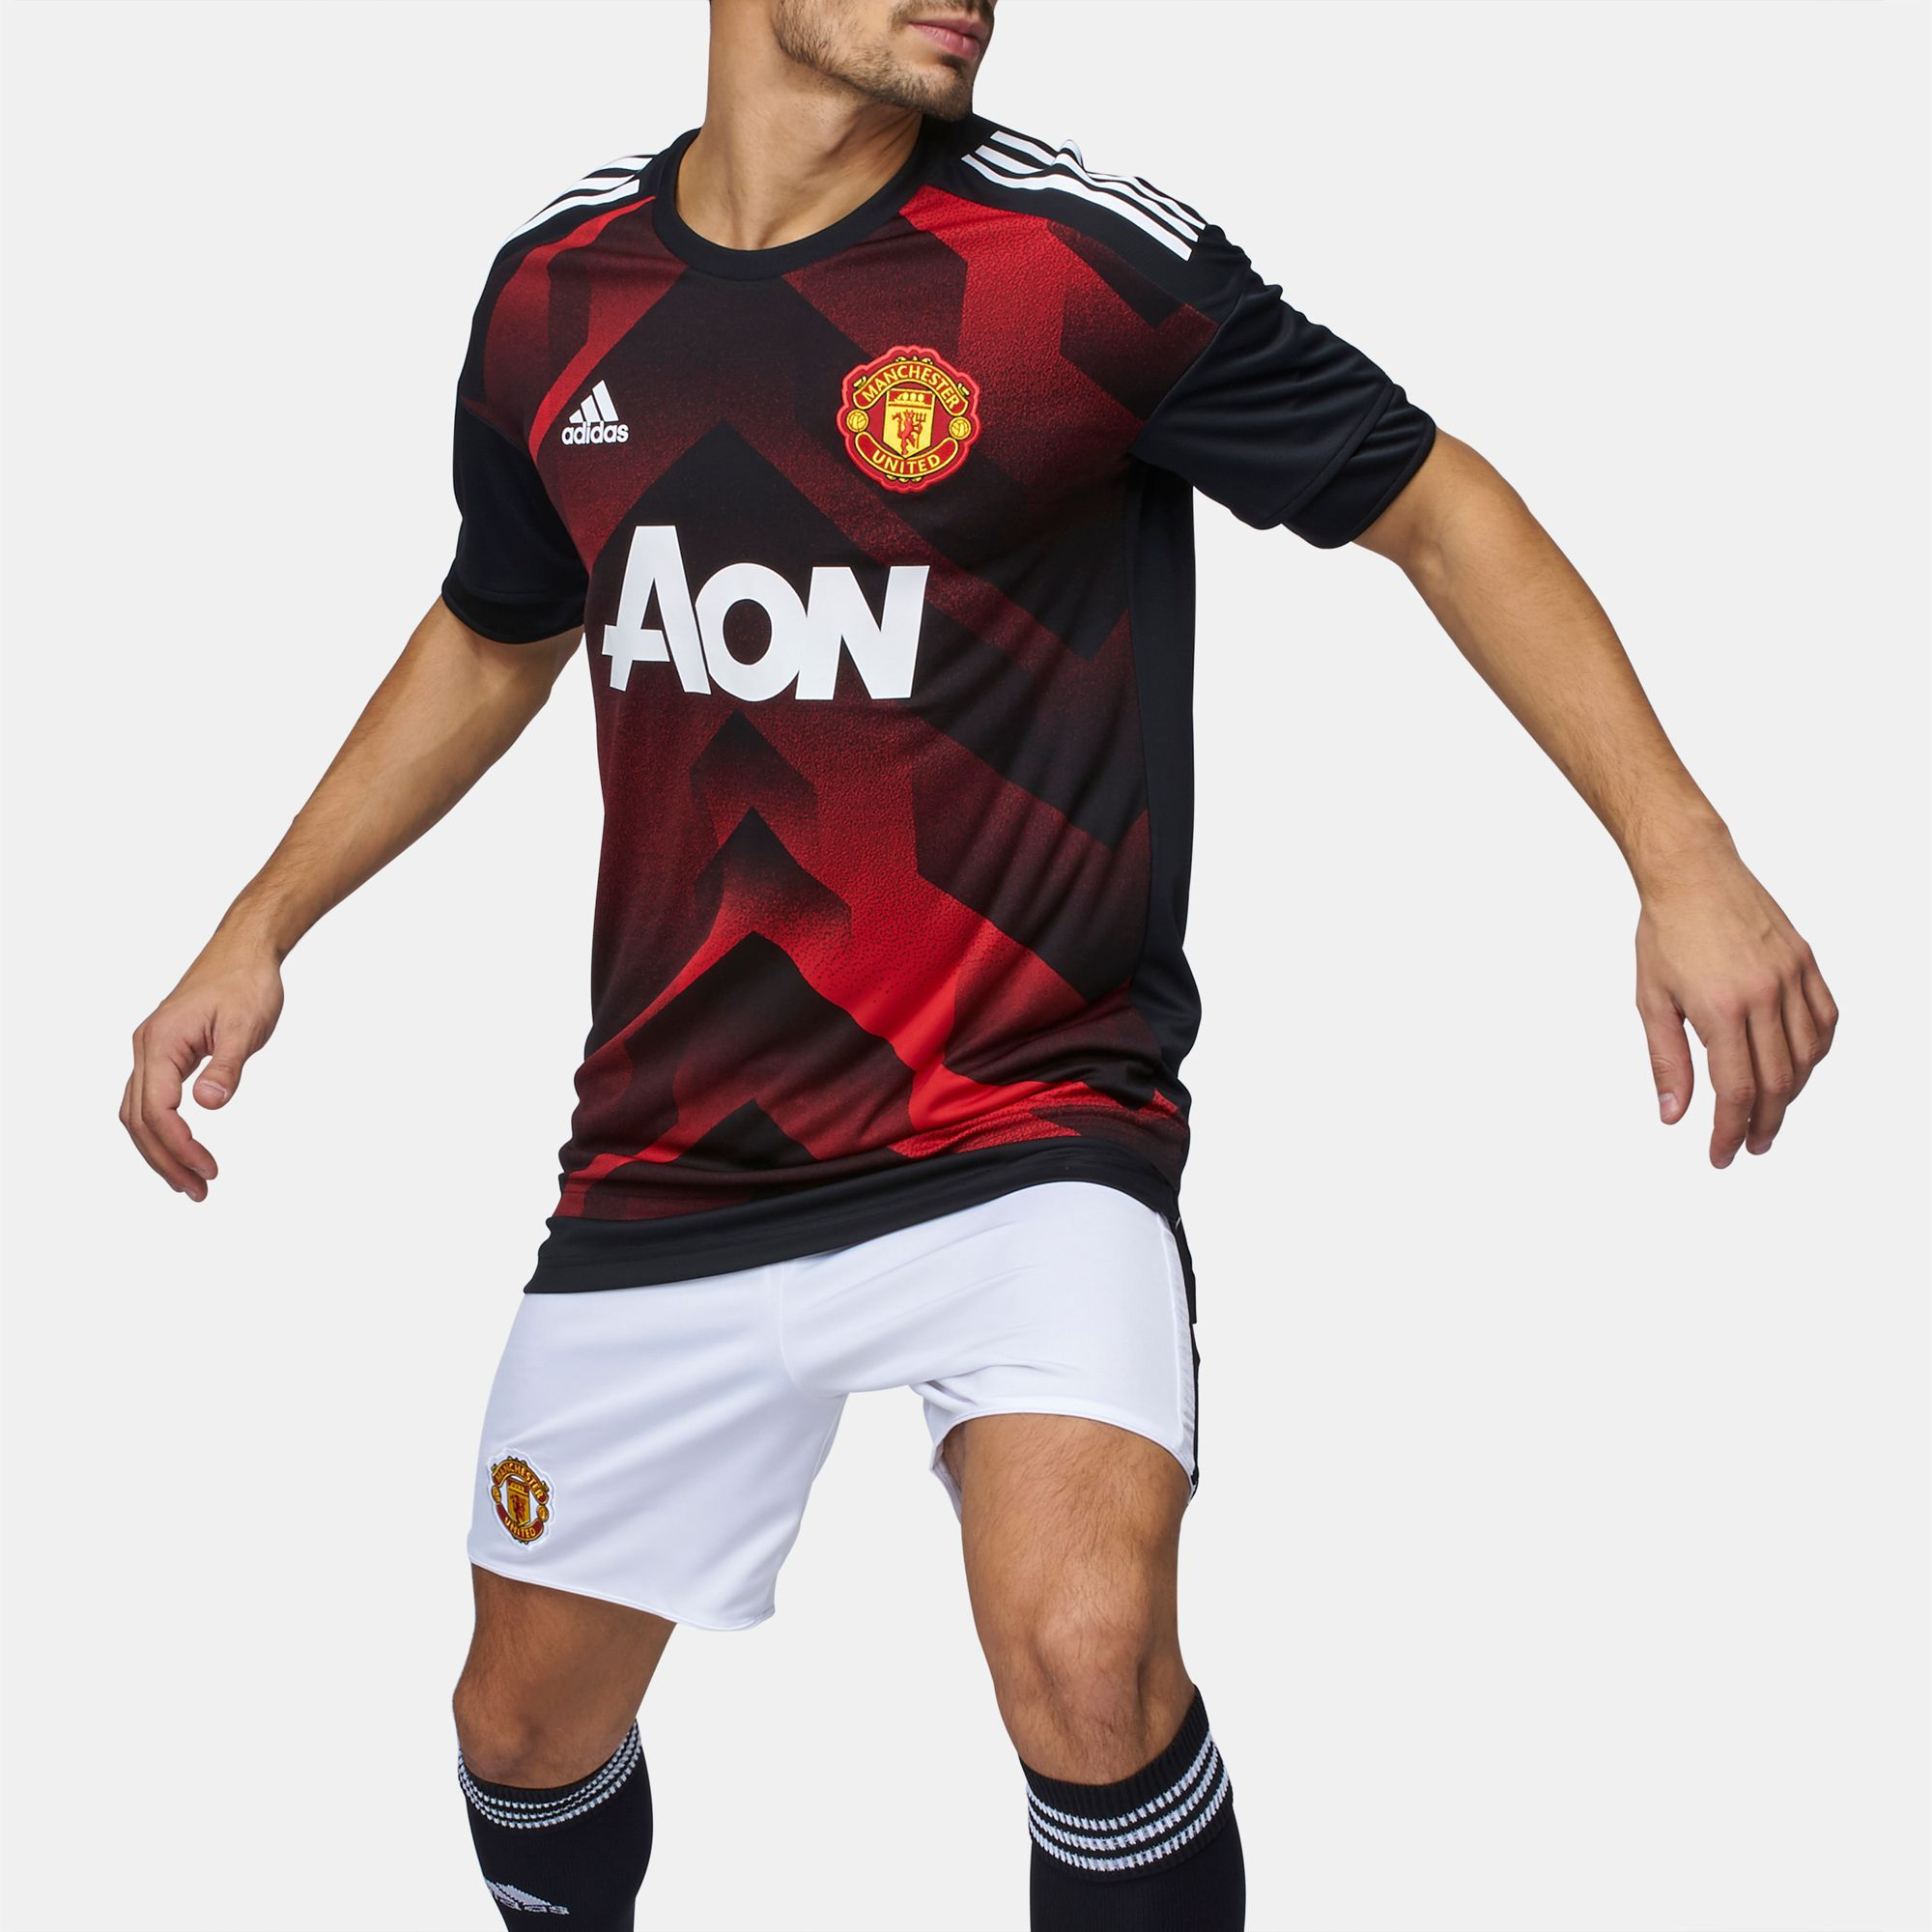 054c71312 Shop Red adidas Manchester United FC Home Pre-match Jersey for Mens by  adidas